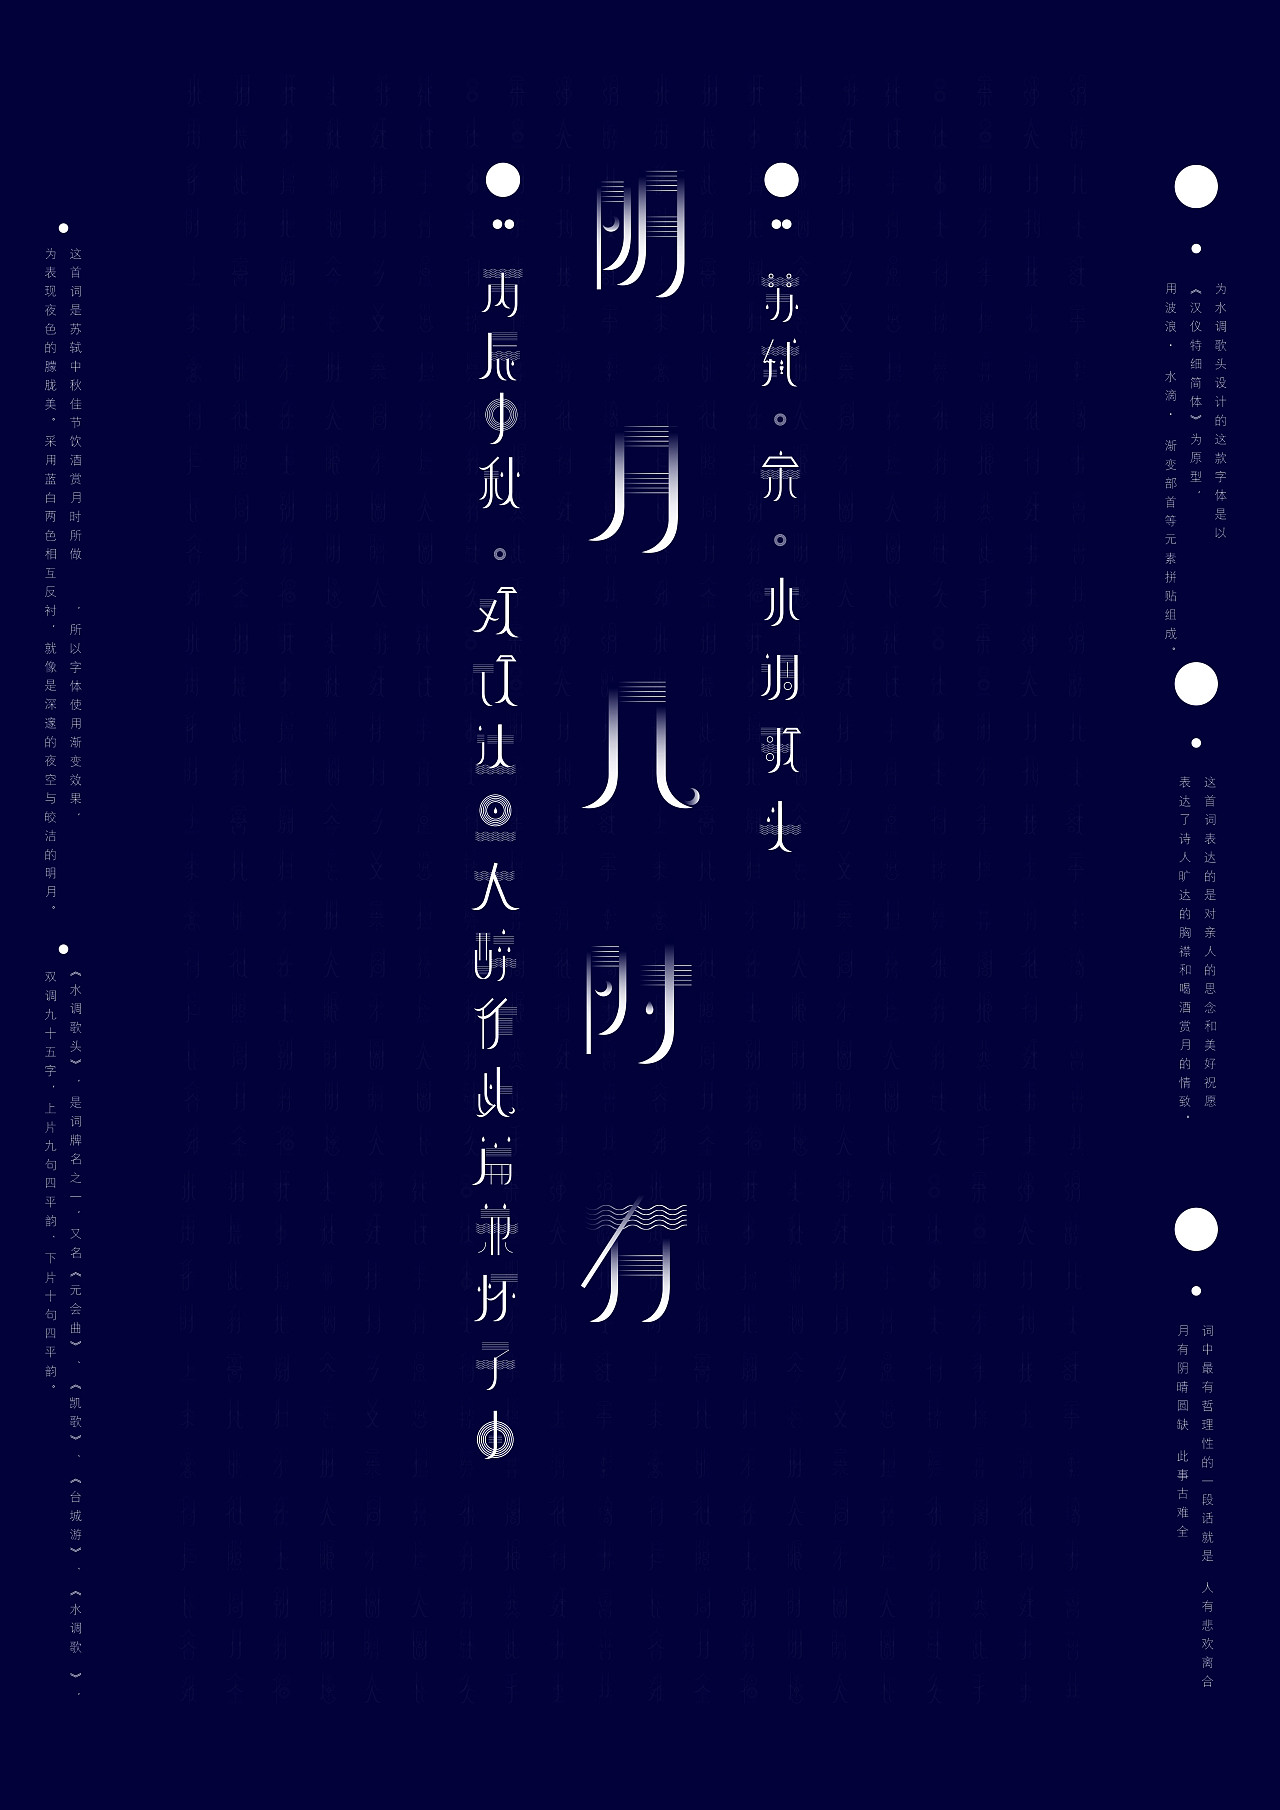 chinesefontdesign.com 2017 11 24 13 17 46 307756 33P Prelude to Water Melody  Brand building of Chinese Fonts   Visual Identity